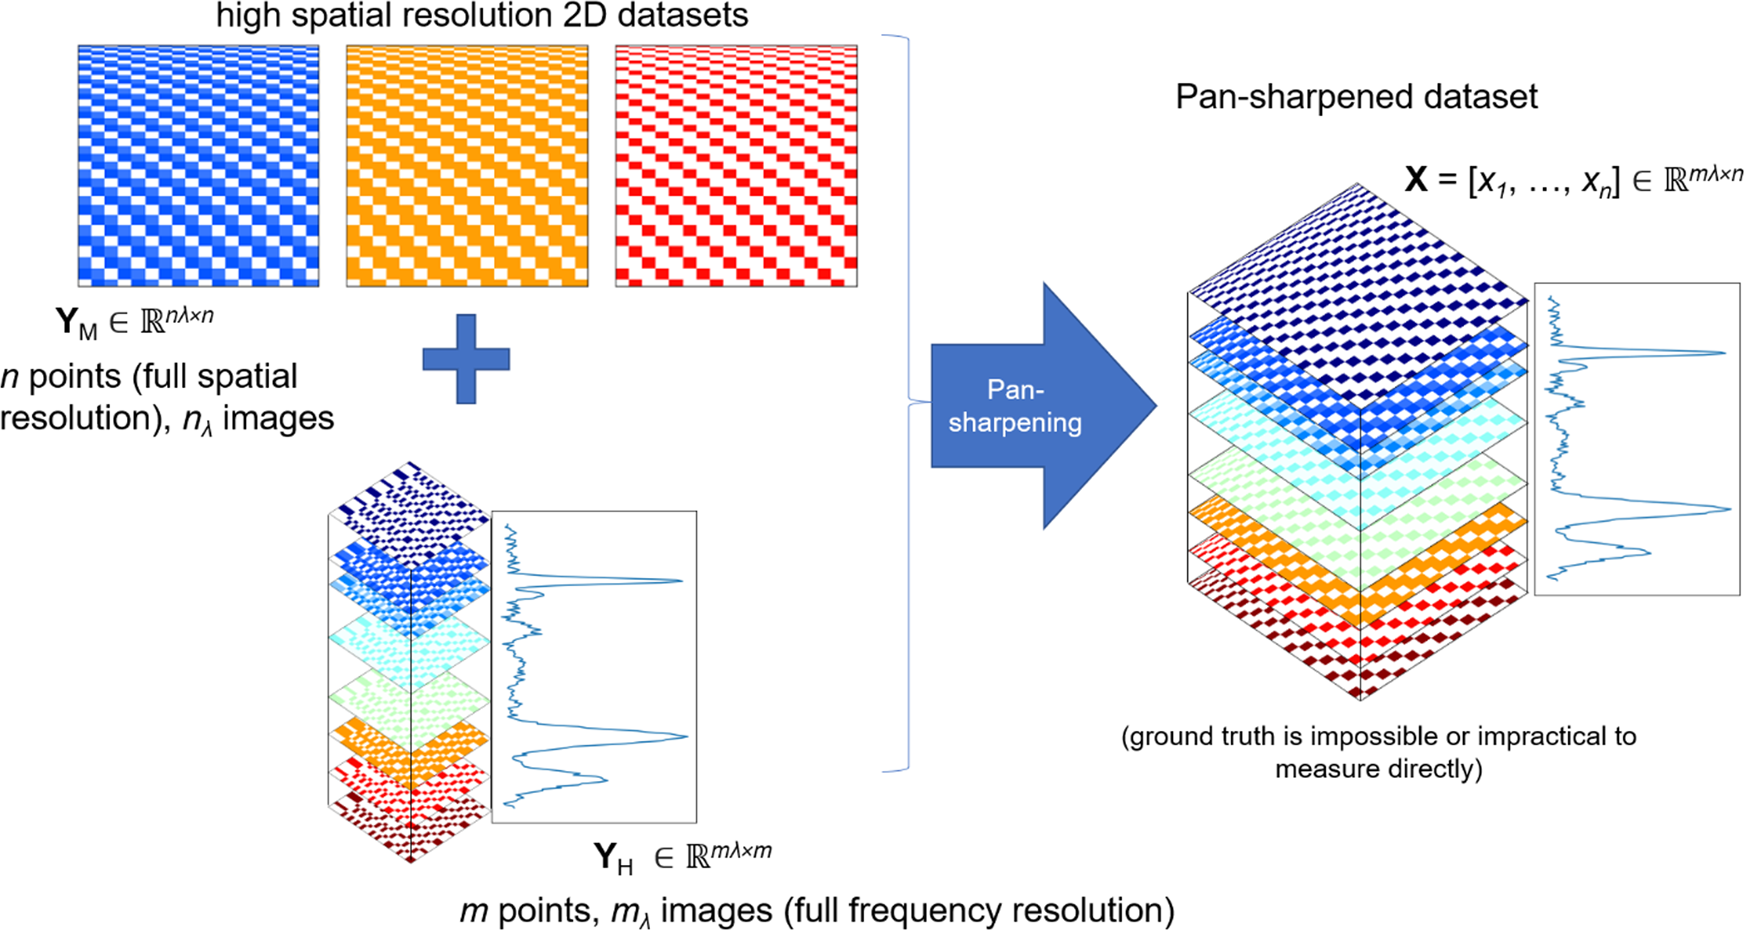 Application of pan-sharpening algorithm for correlative multimodal